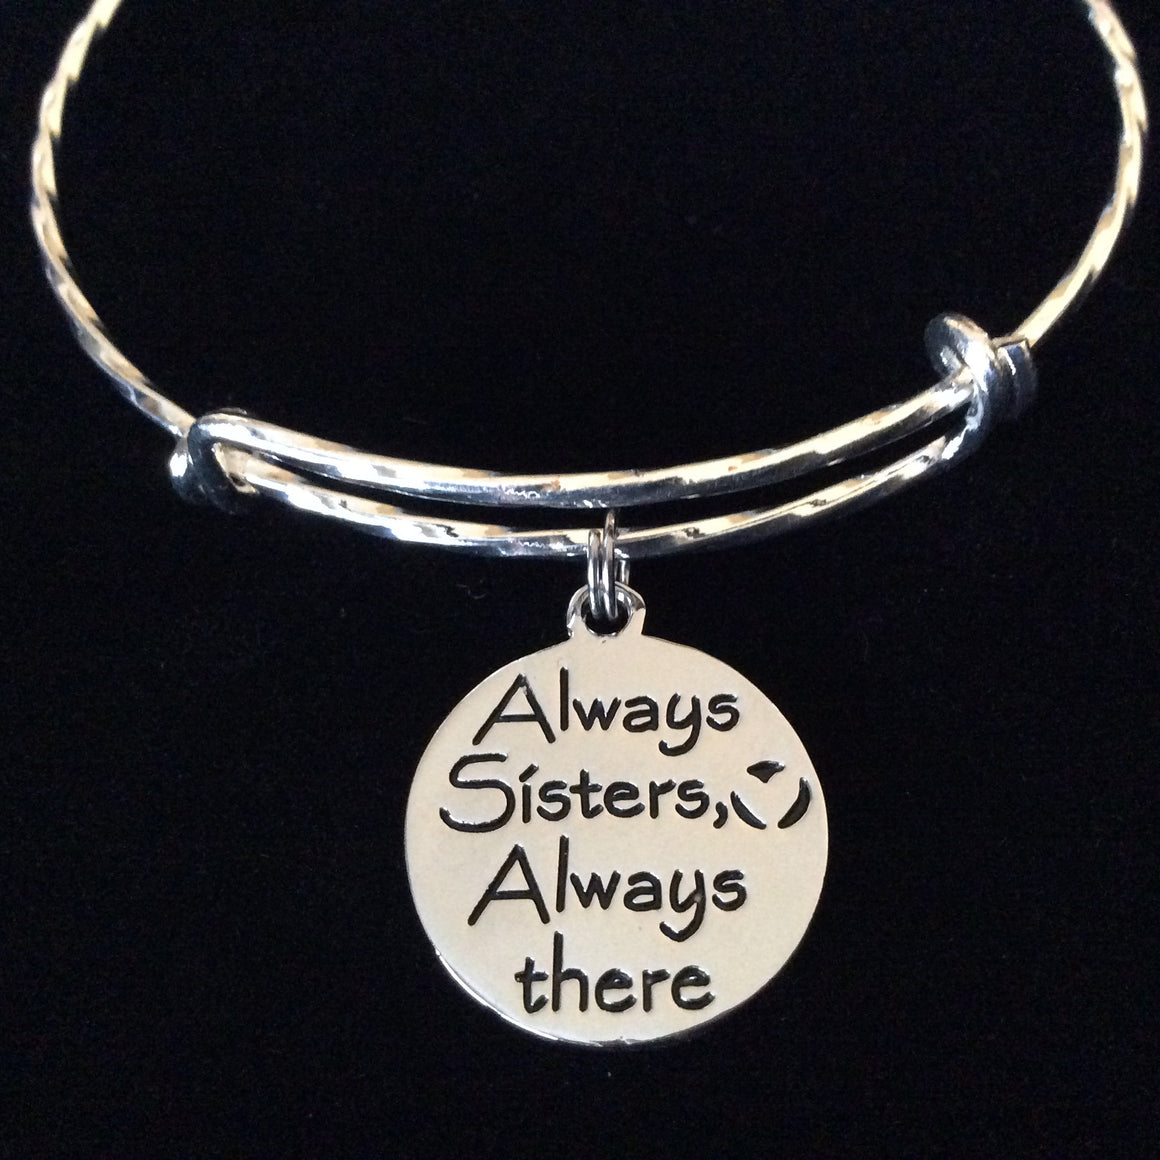 Always Sisters Always There Expandable Silver Charm Bracelet Adjustable Bangle Family Gift